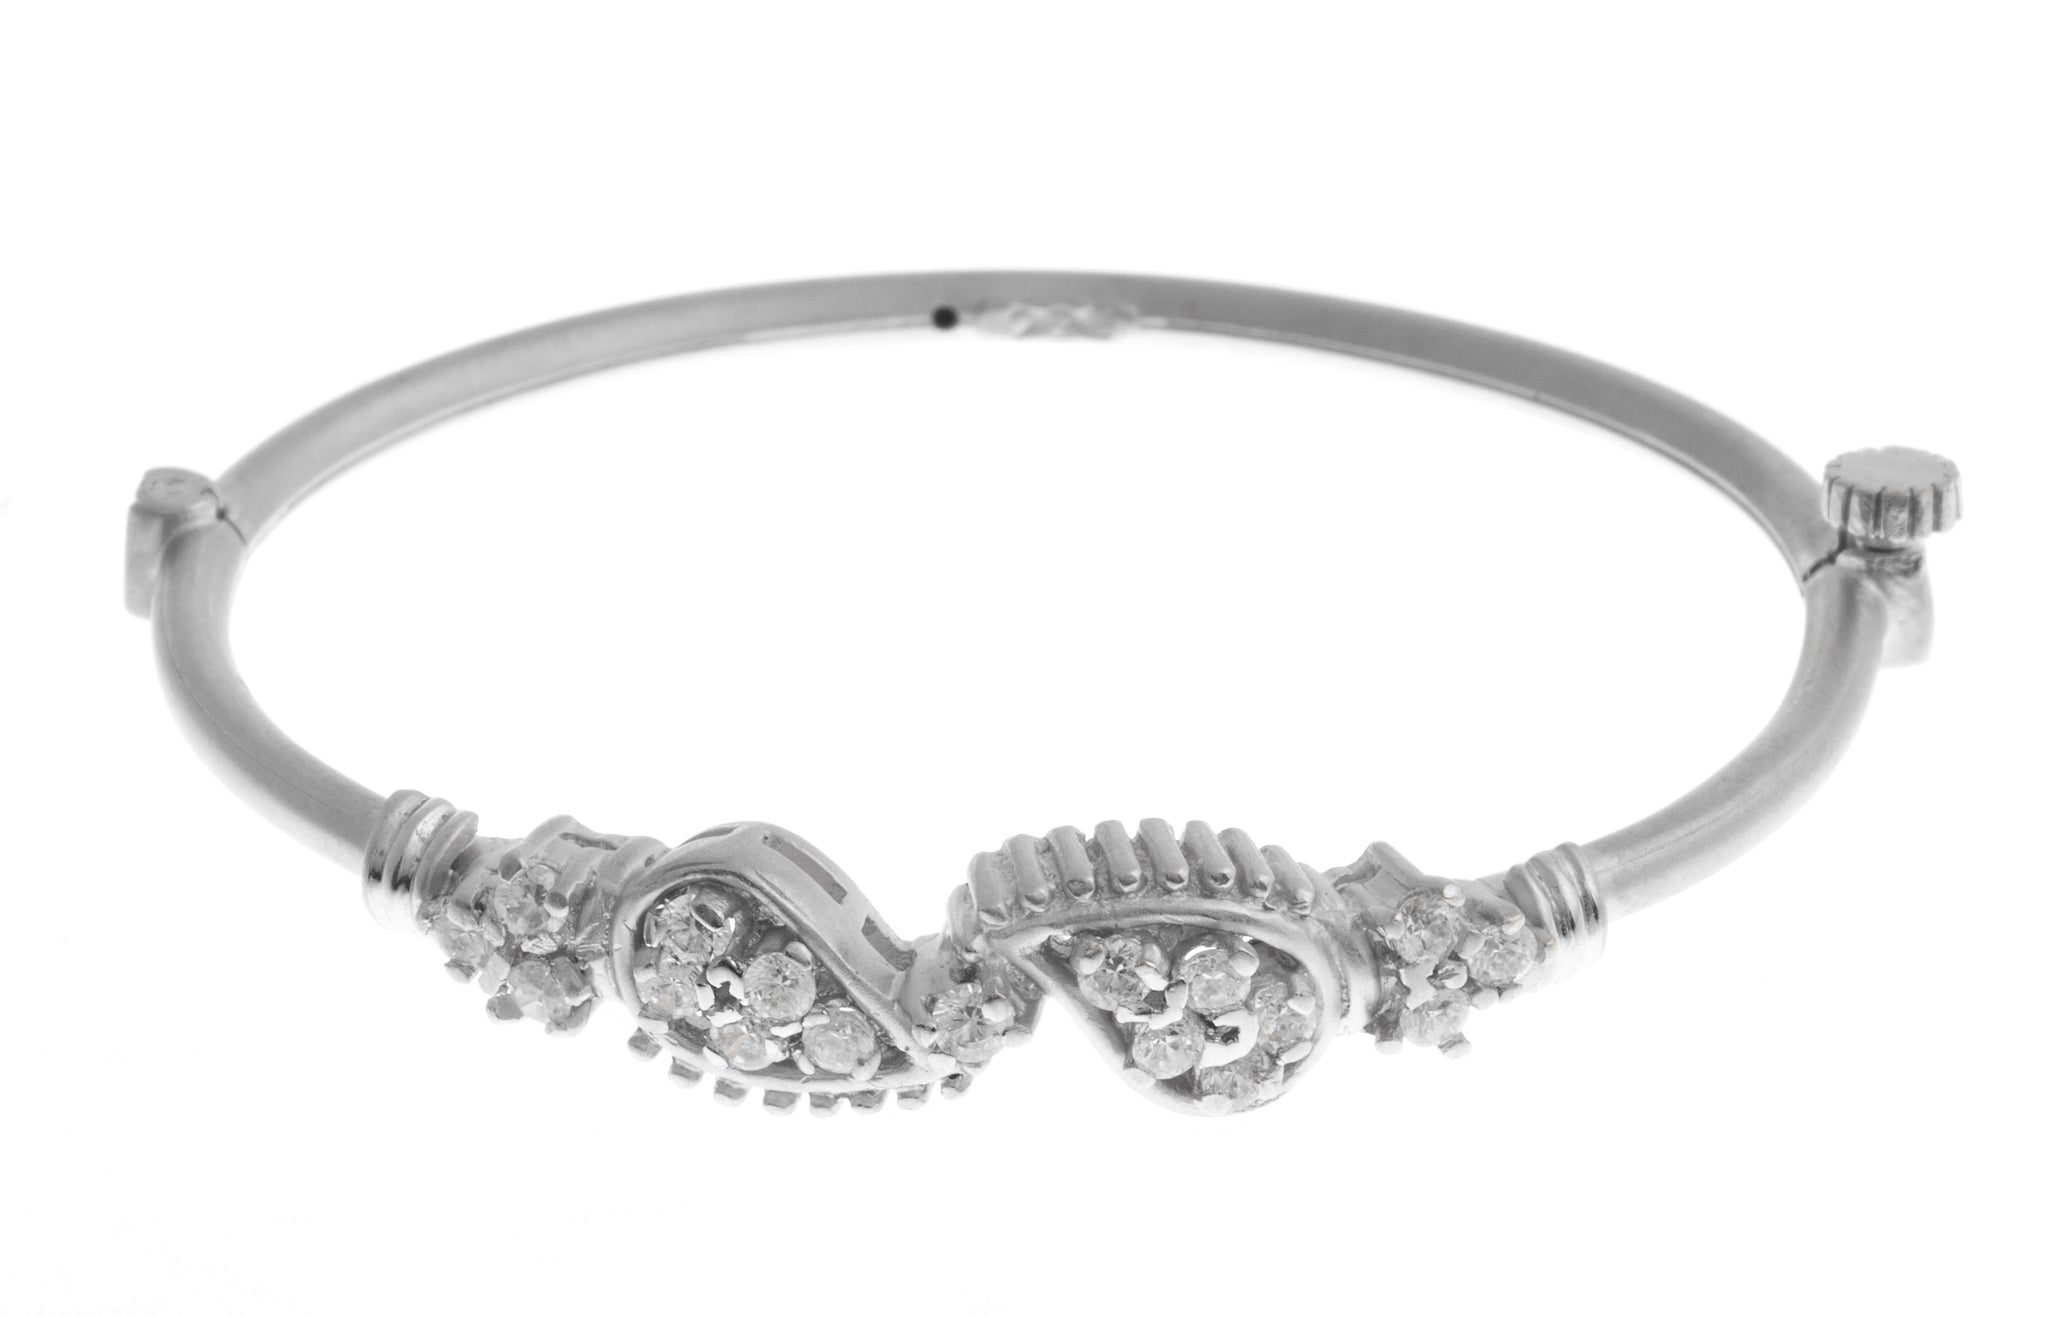 White Rhodium Plated Stone Set 22ct White Cubic Zirconia Children's Bangle B-1402